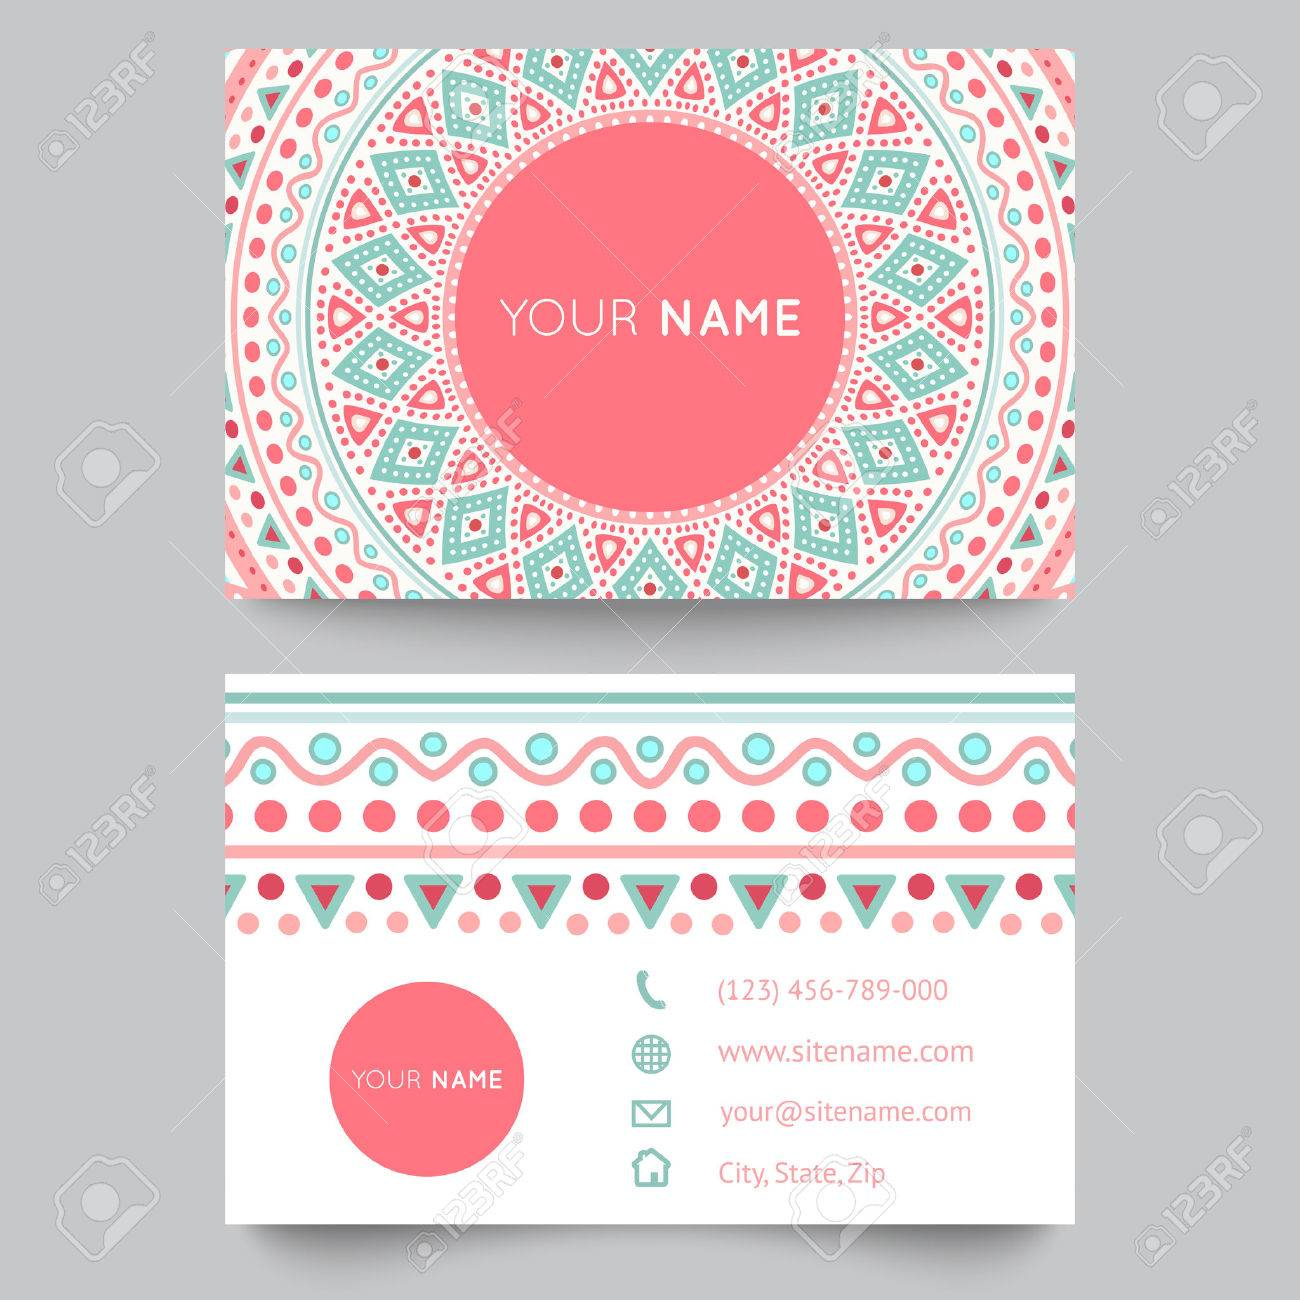 Business Card Template Blue White And Pink Beauty Fashion - Editable business card templates free